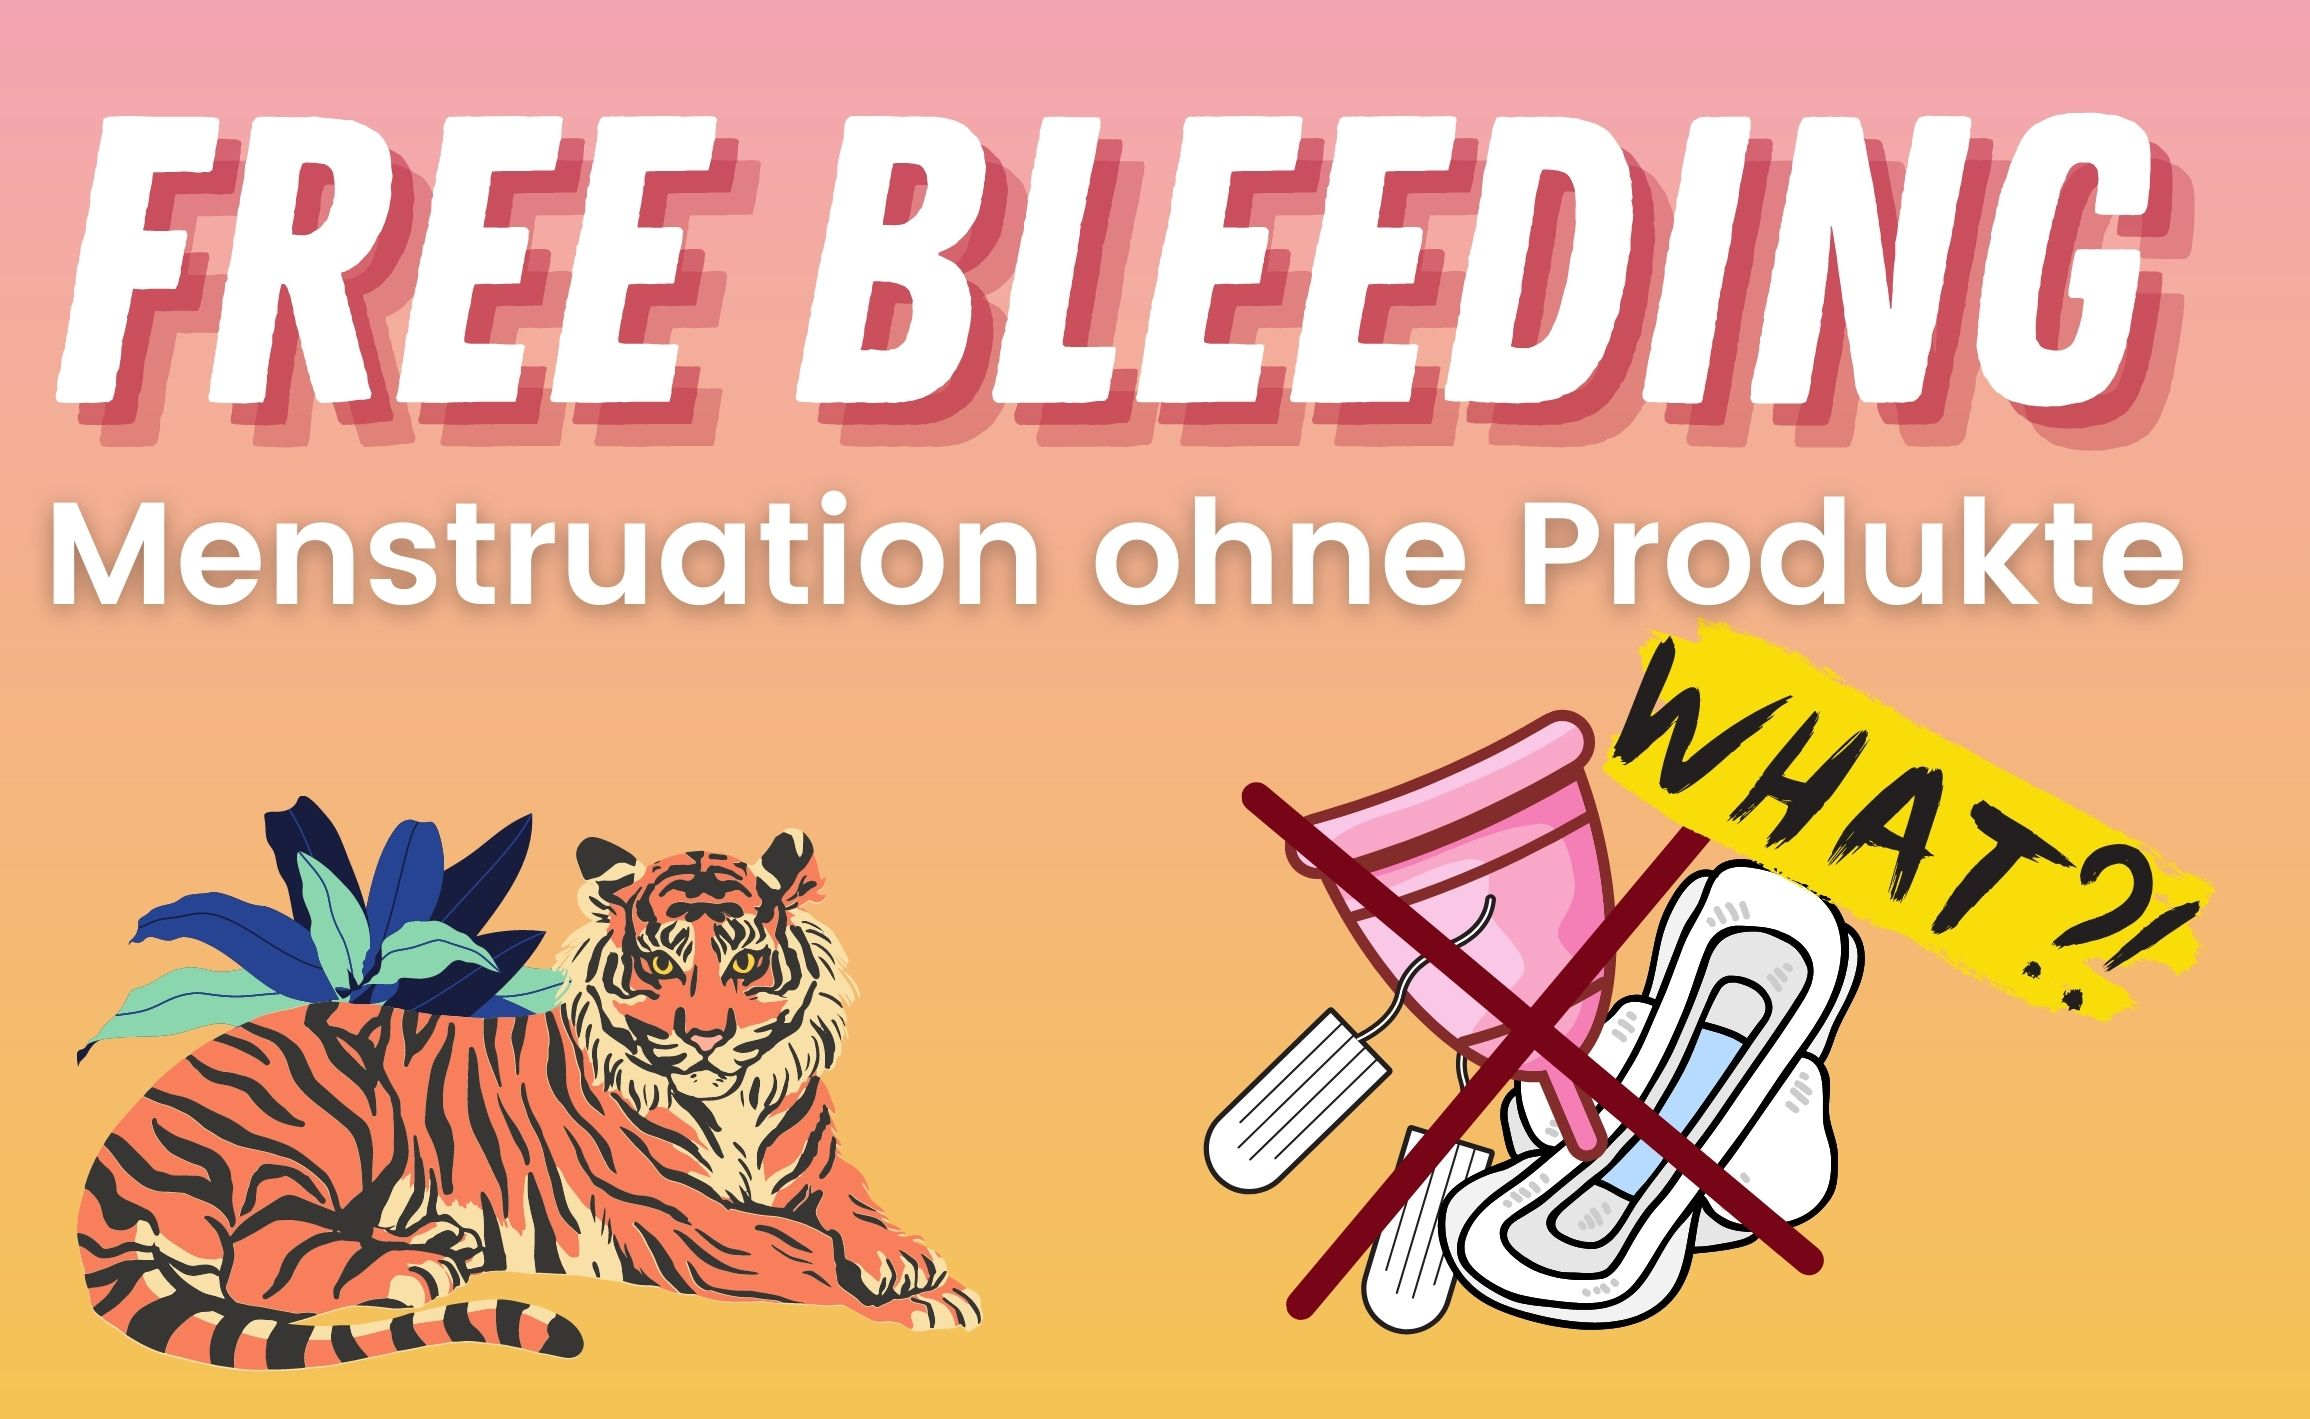 periode, periodenbilder, periodenblut, periodengallerie, periodenkunst, periods, pink, red, regel, regelblutung, rot, stockfotografie, tage, vulvani, free bleeding lernen, free bleeding, free bleeding tipps, free bleeding online lernen, online-kurs free bleeding, learning free bleeding, practice free bleeding, how to learn free bleeding, online course free bleeding,